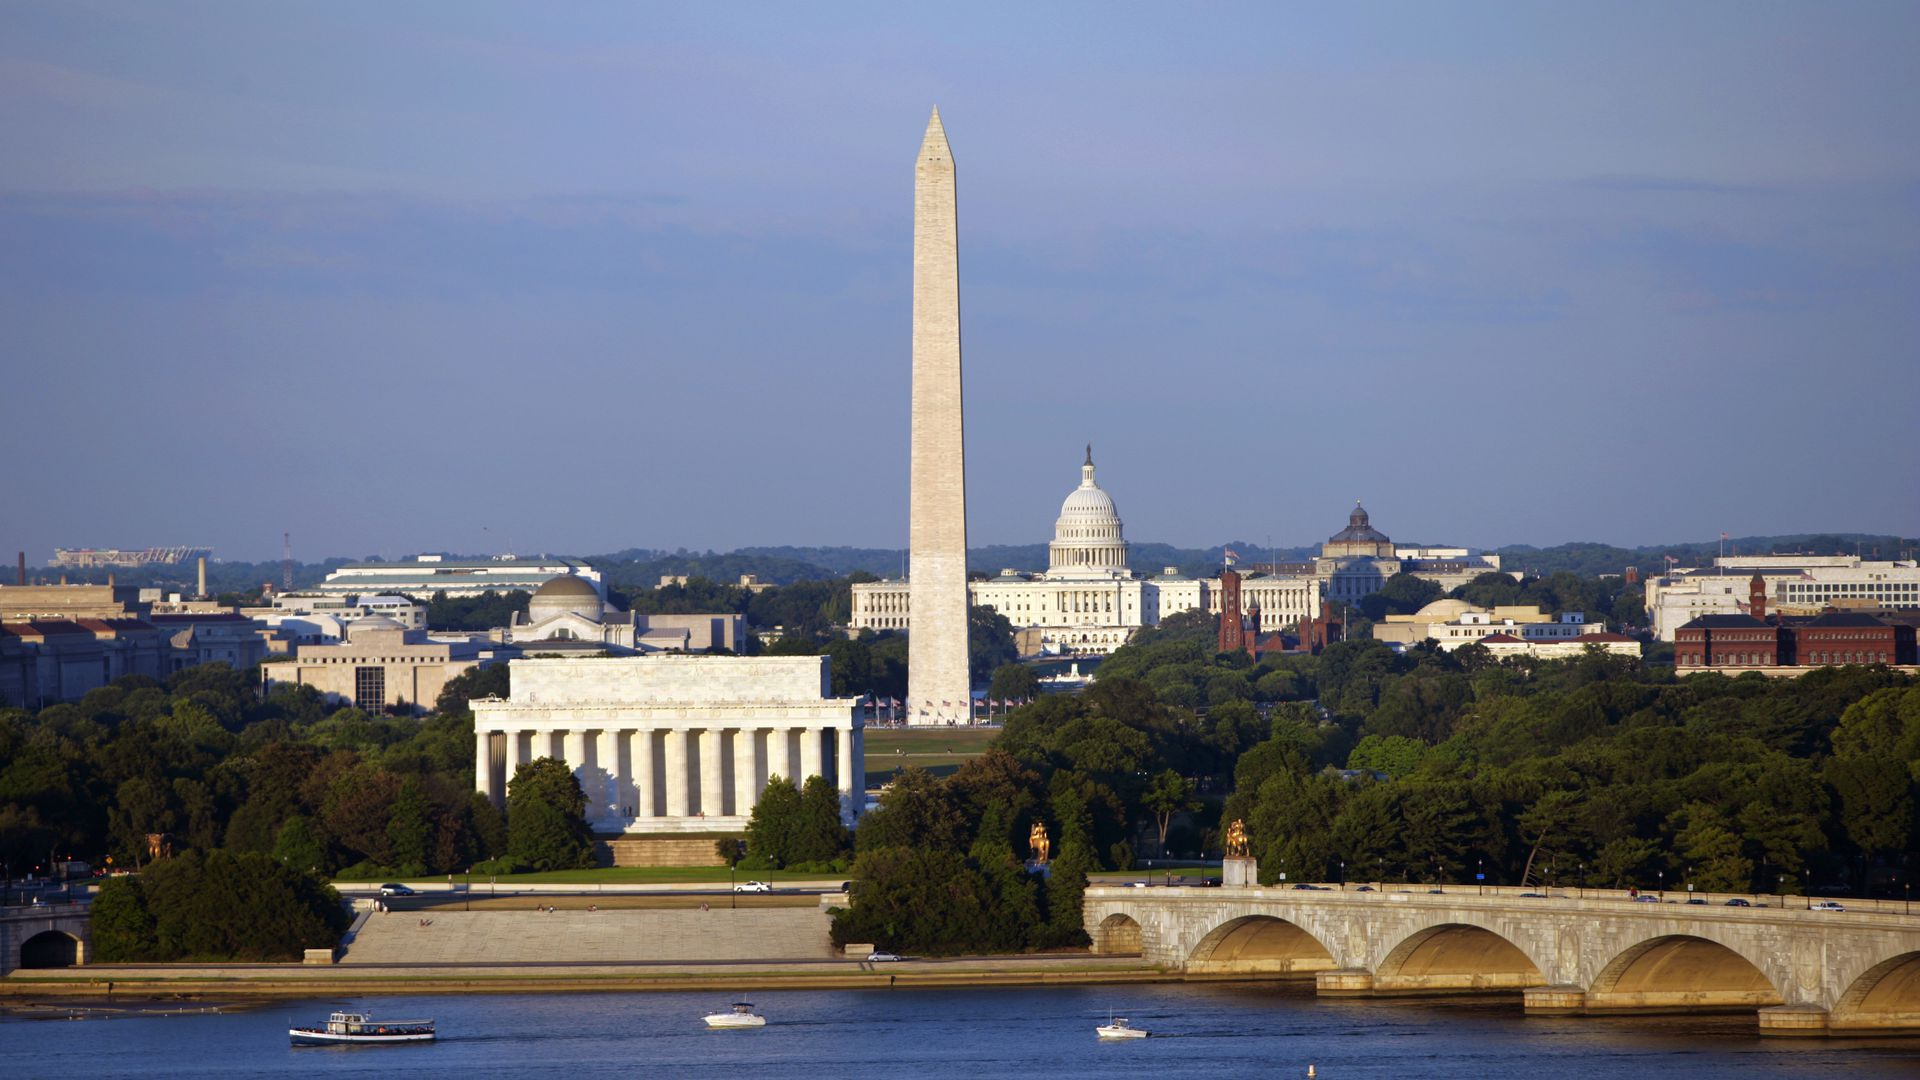 A panorama view of Washington, D.C.